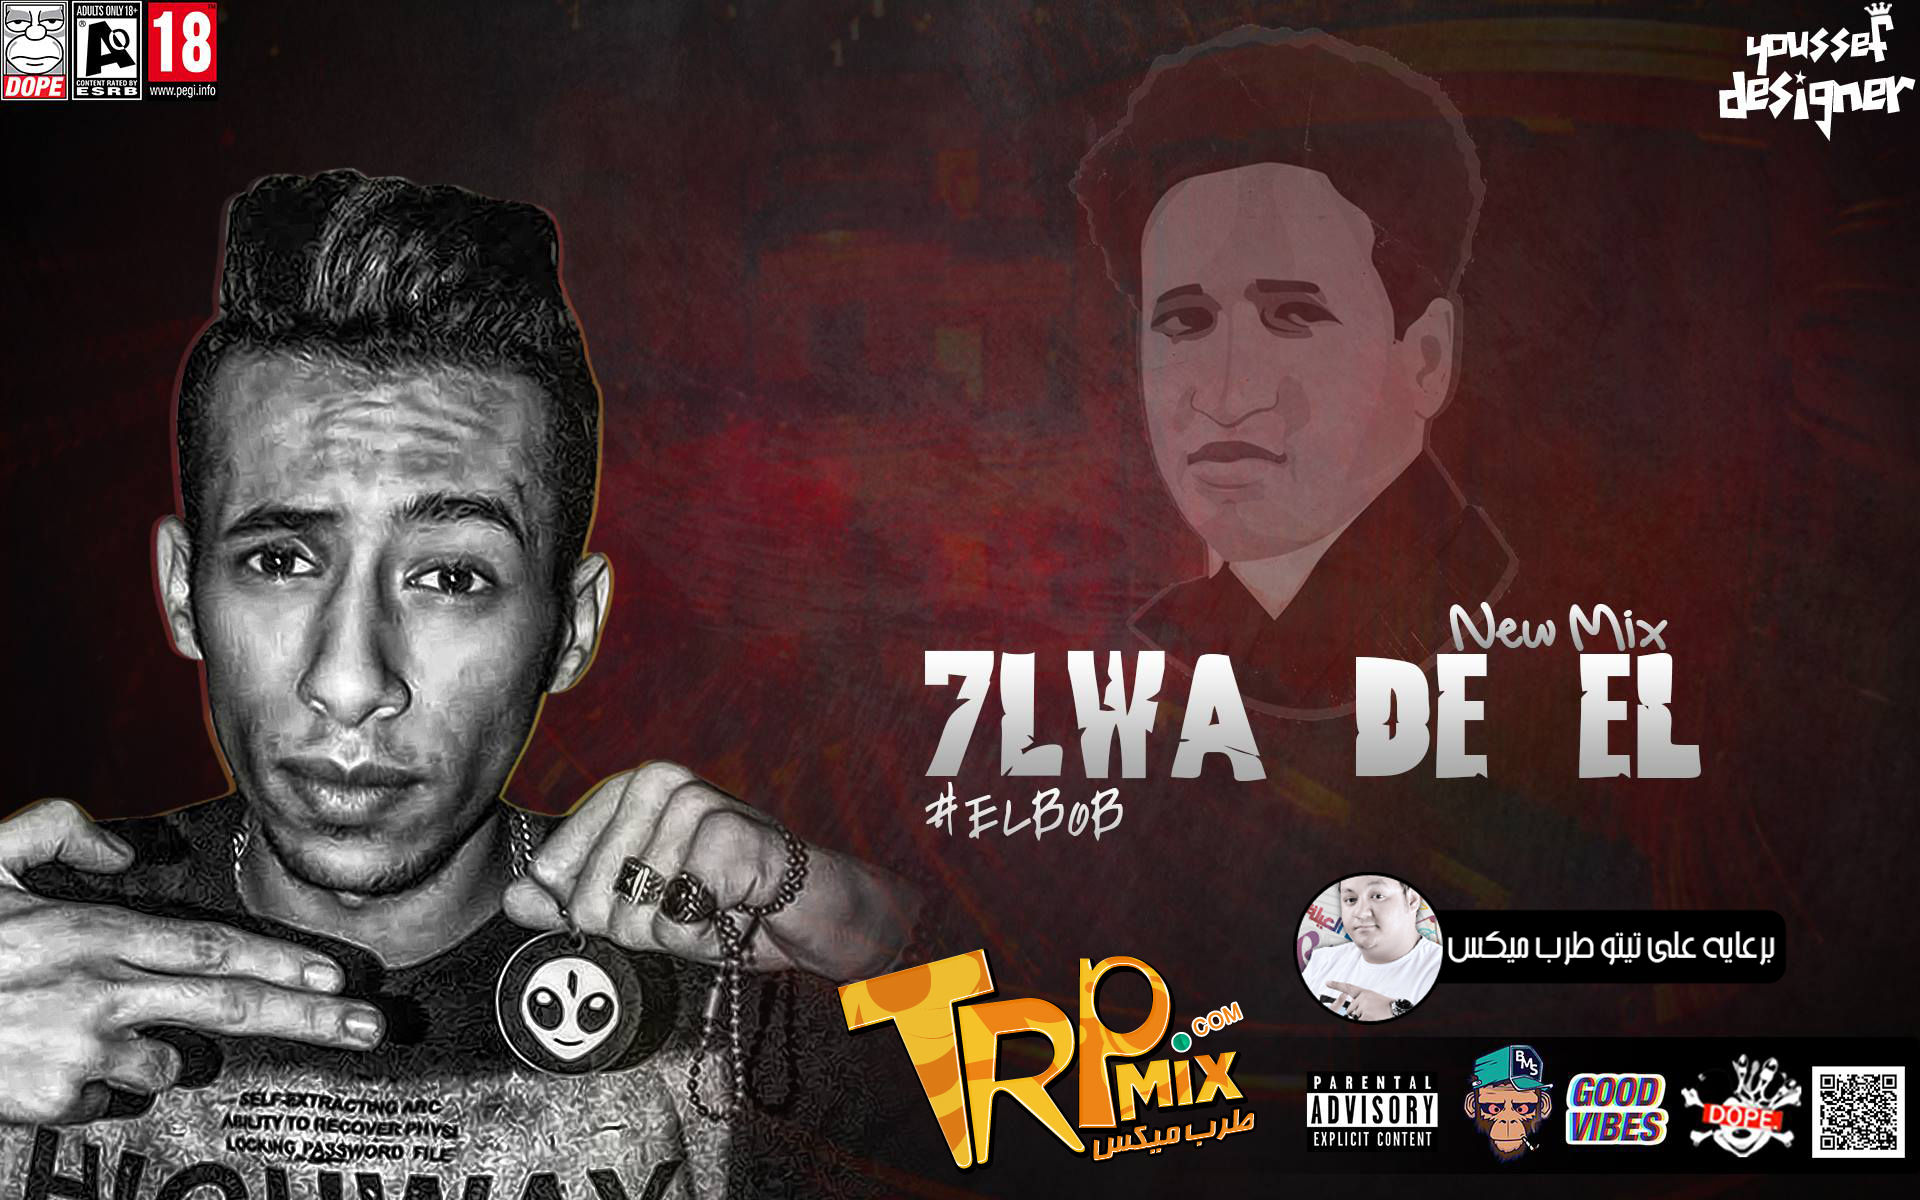 New Mix.El7lwa Di. By Dj ELBOB